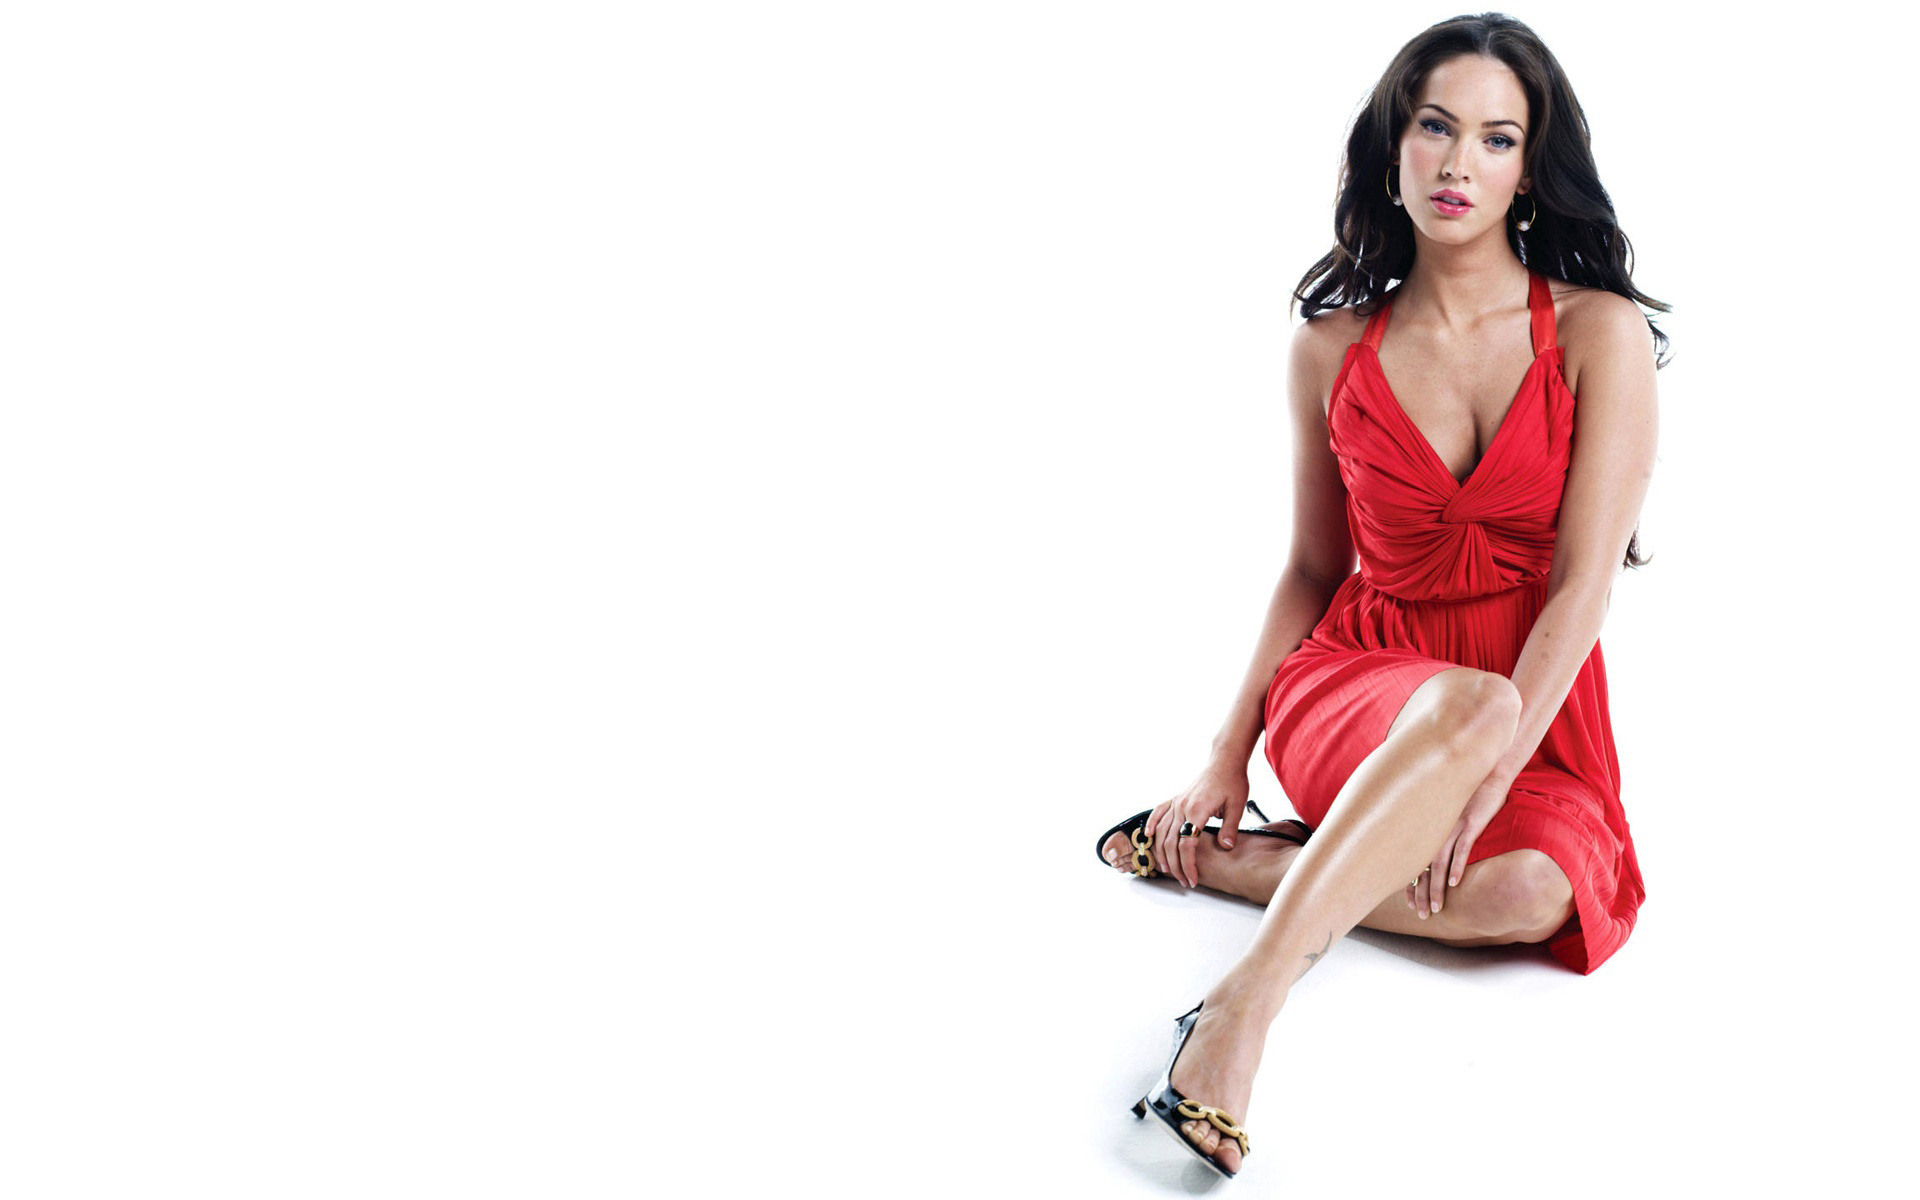 Hottest Megan Fox Wallpapers Pictures And Images Only For True